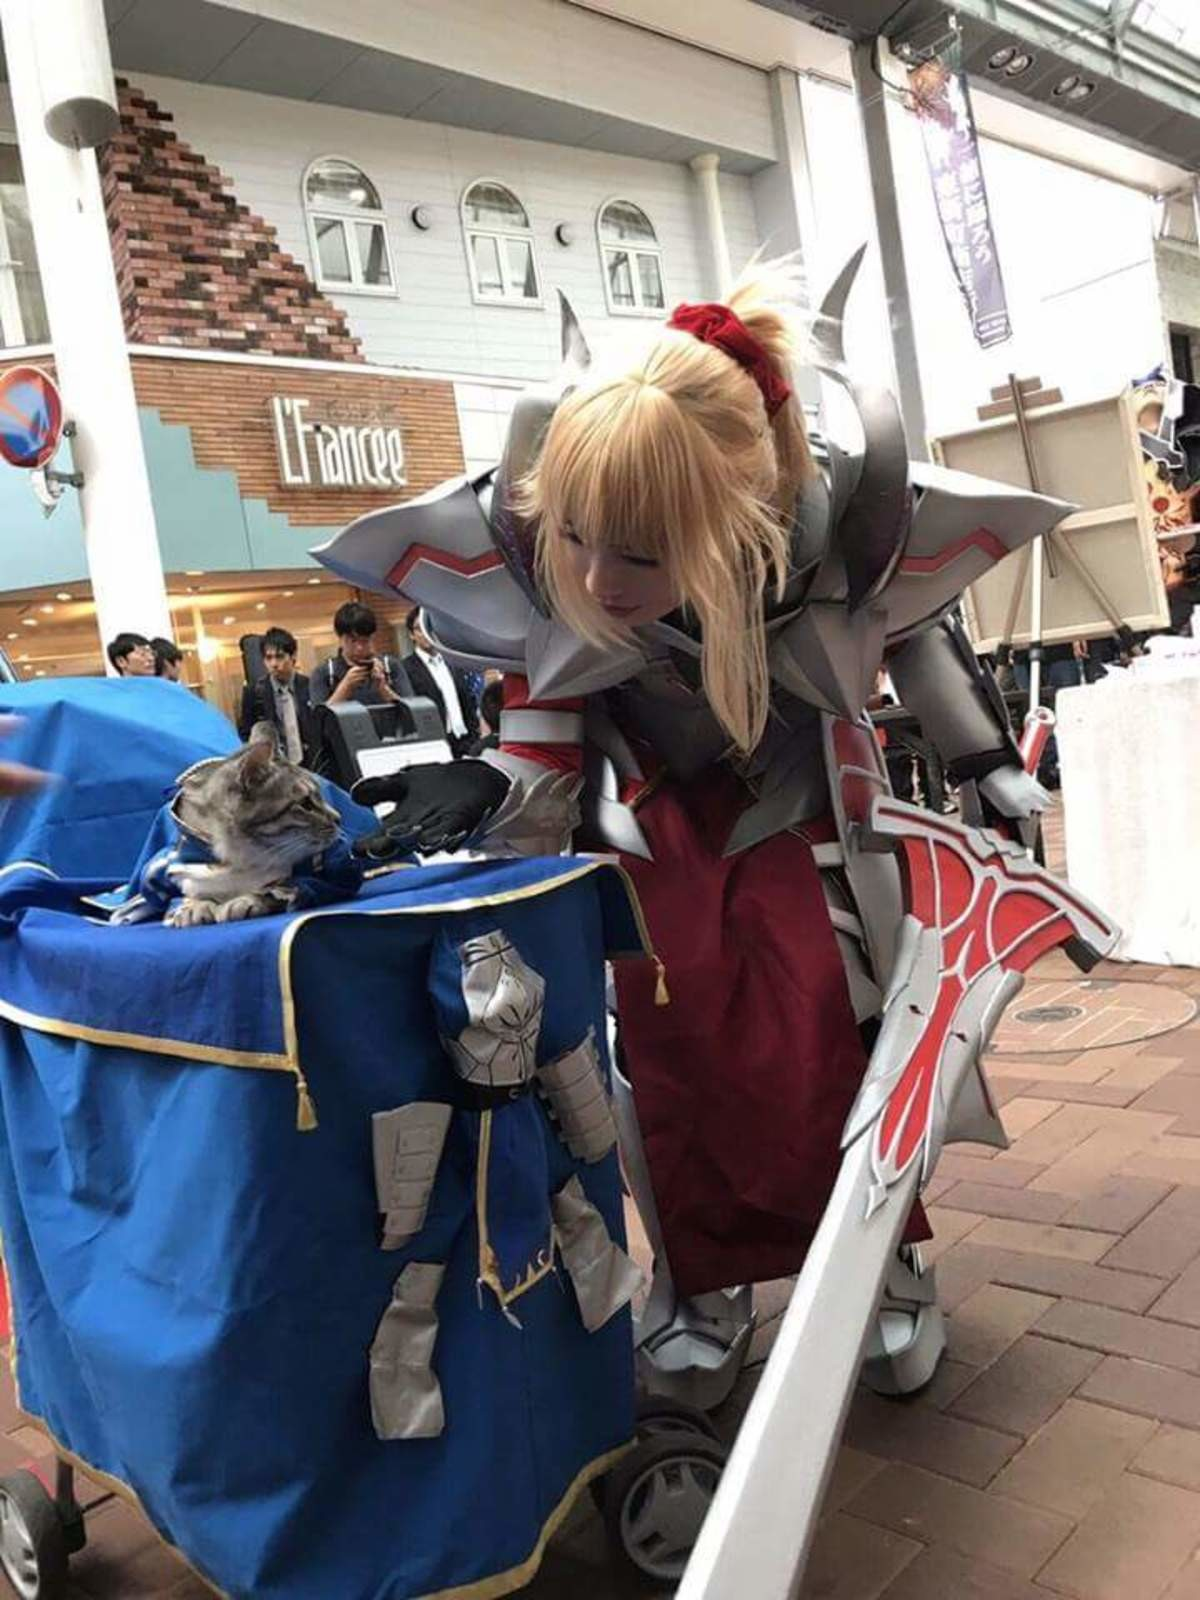 Saber Lion Irl. join list: Lewds4DHeart (1600 subs)Mention History join list:. Smug as